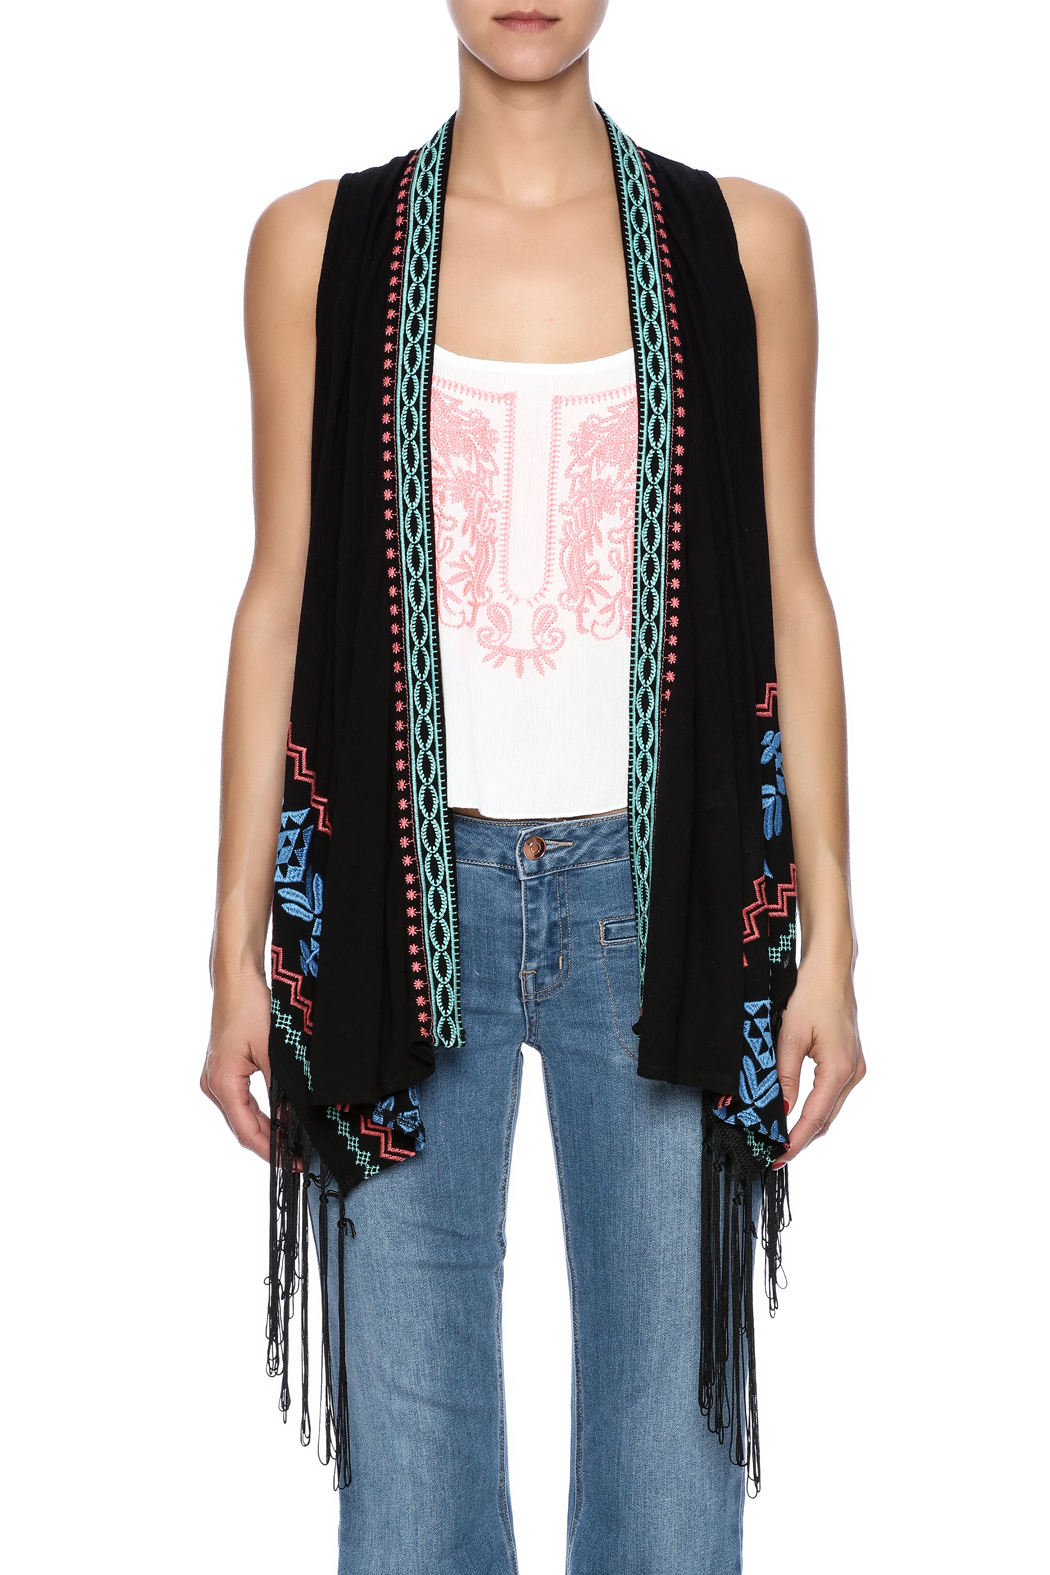 Umgee USA Embroidered Fringe Vest - Side Cropped Image